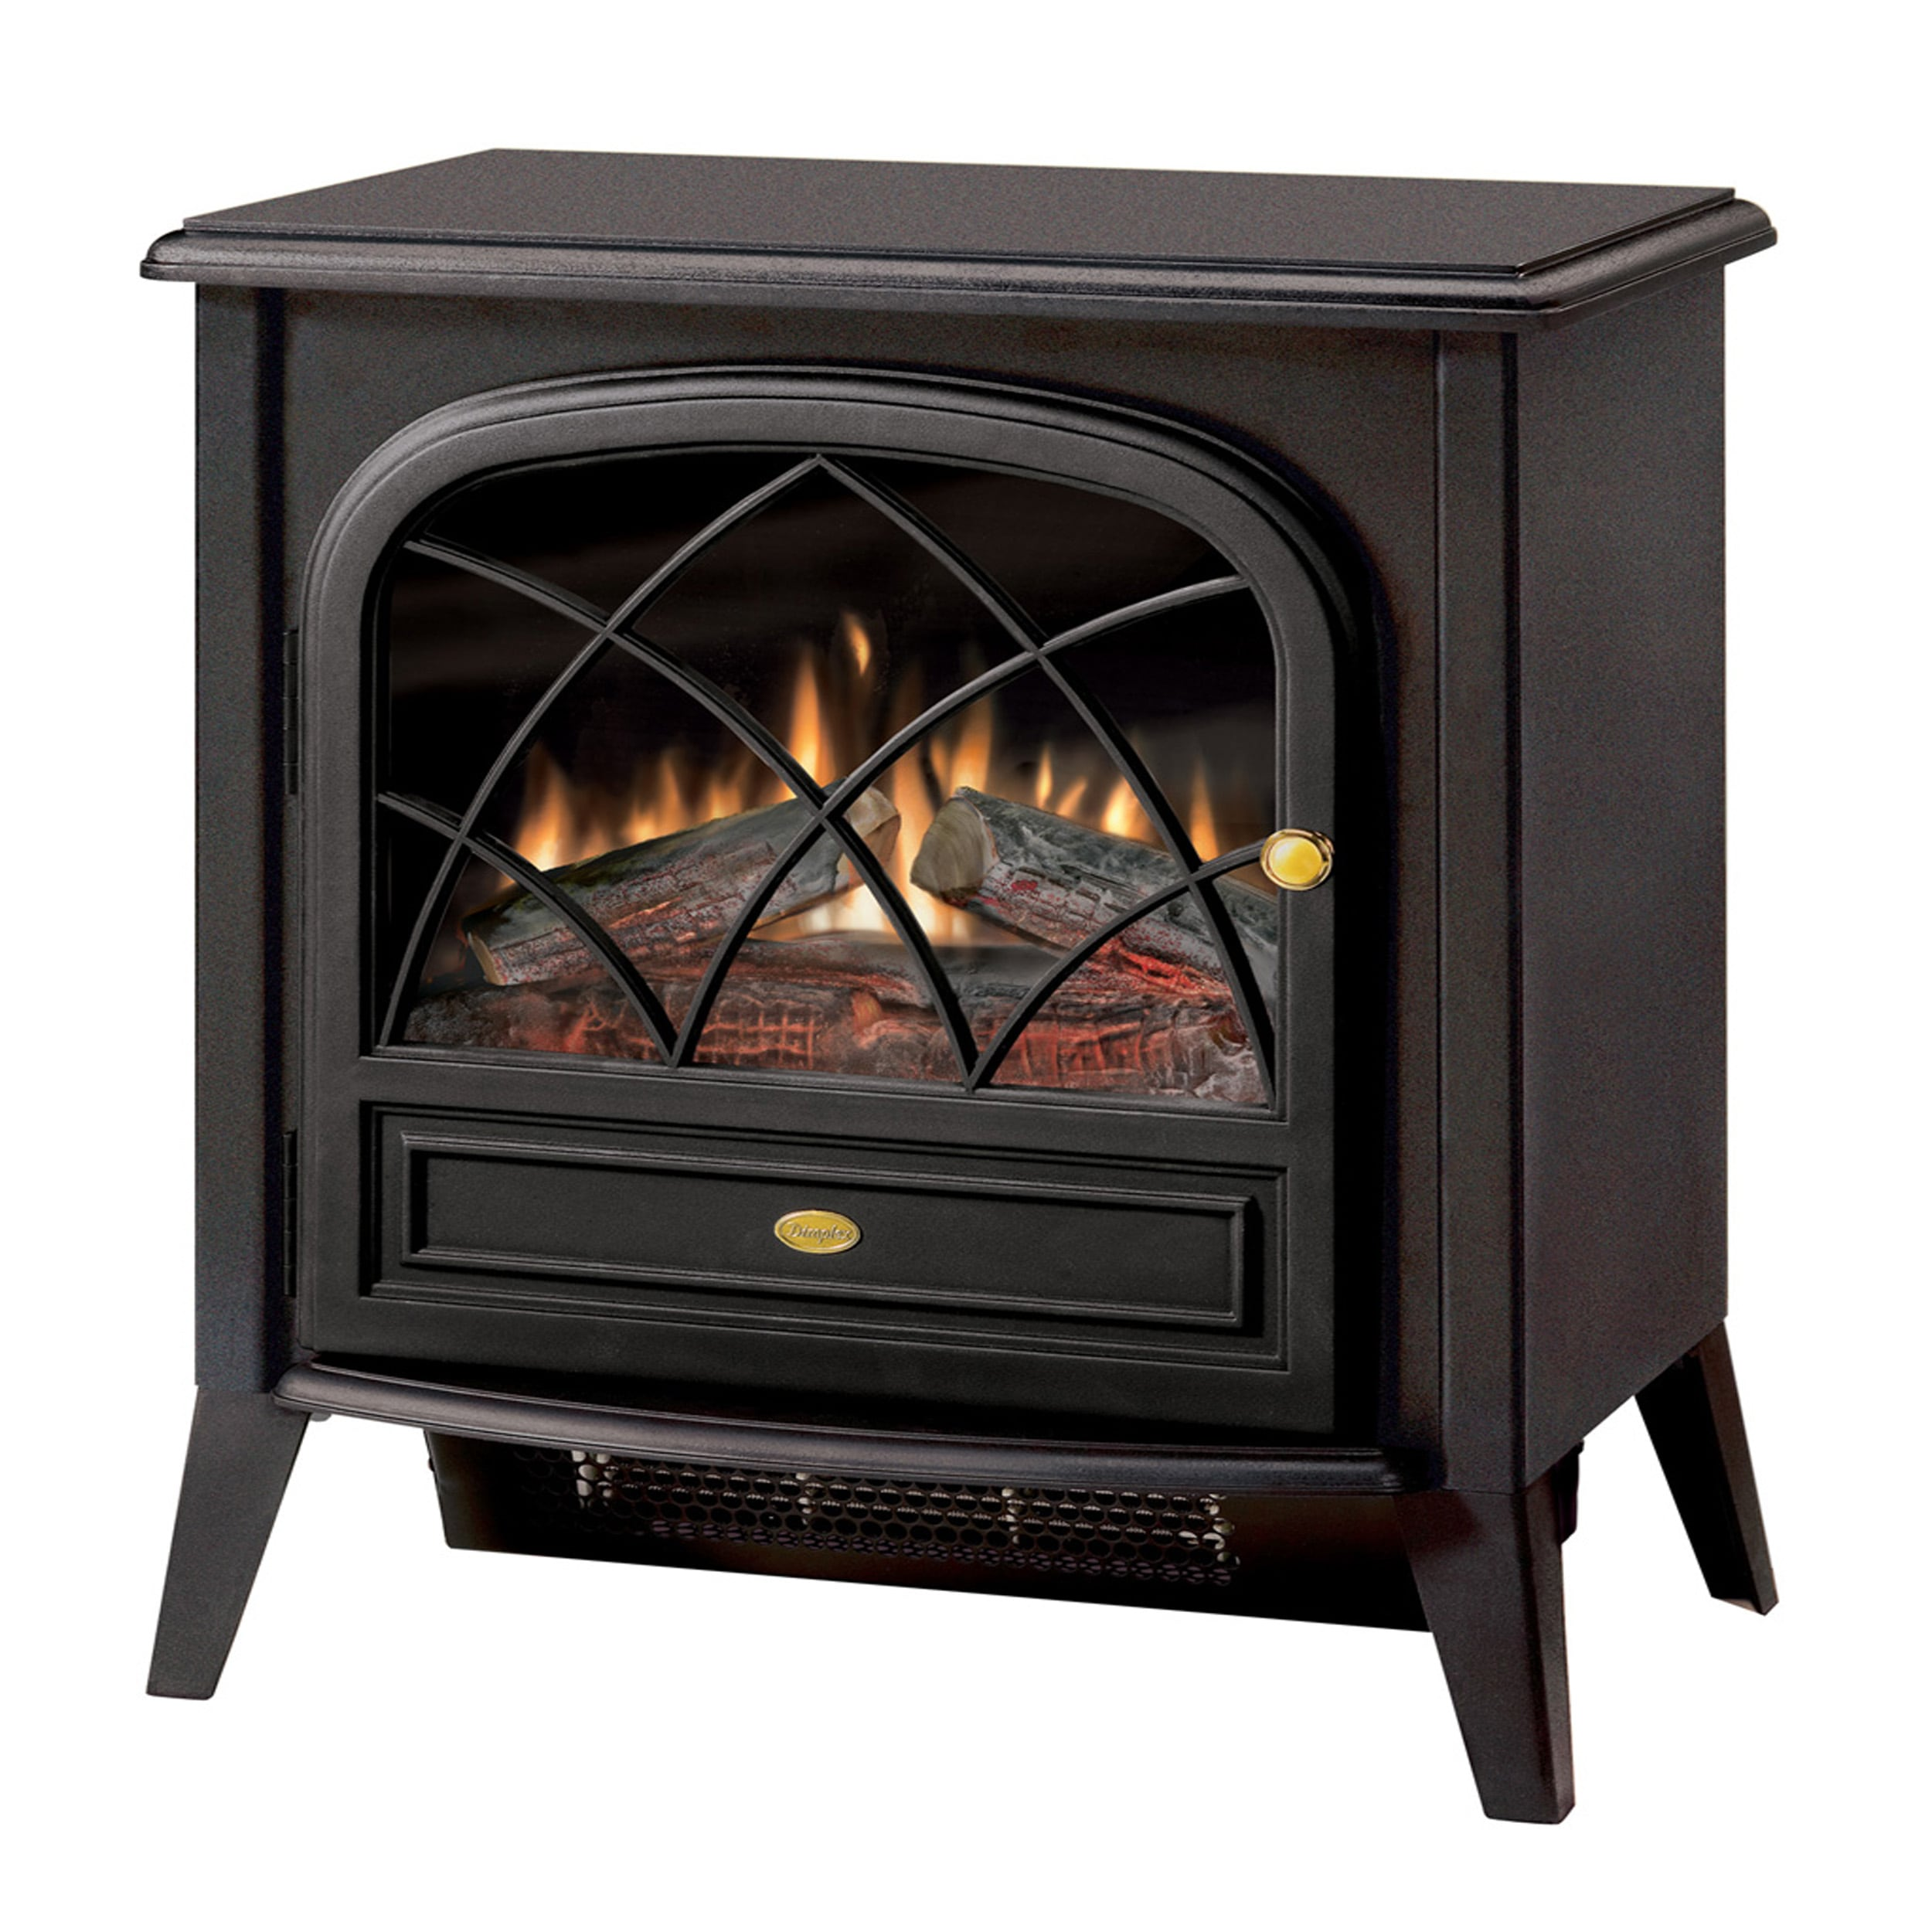 Dimplex Black Electric Flame Stove (Supplier SKU) (Glass)